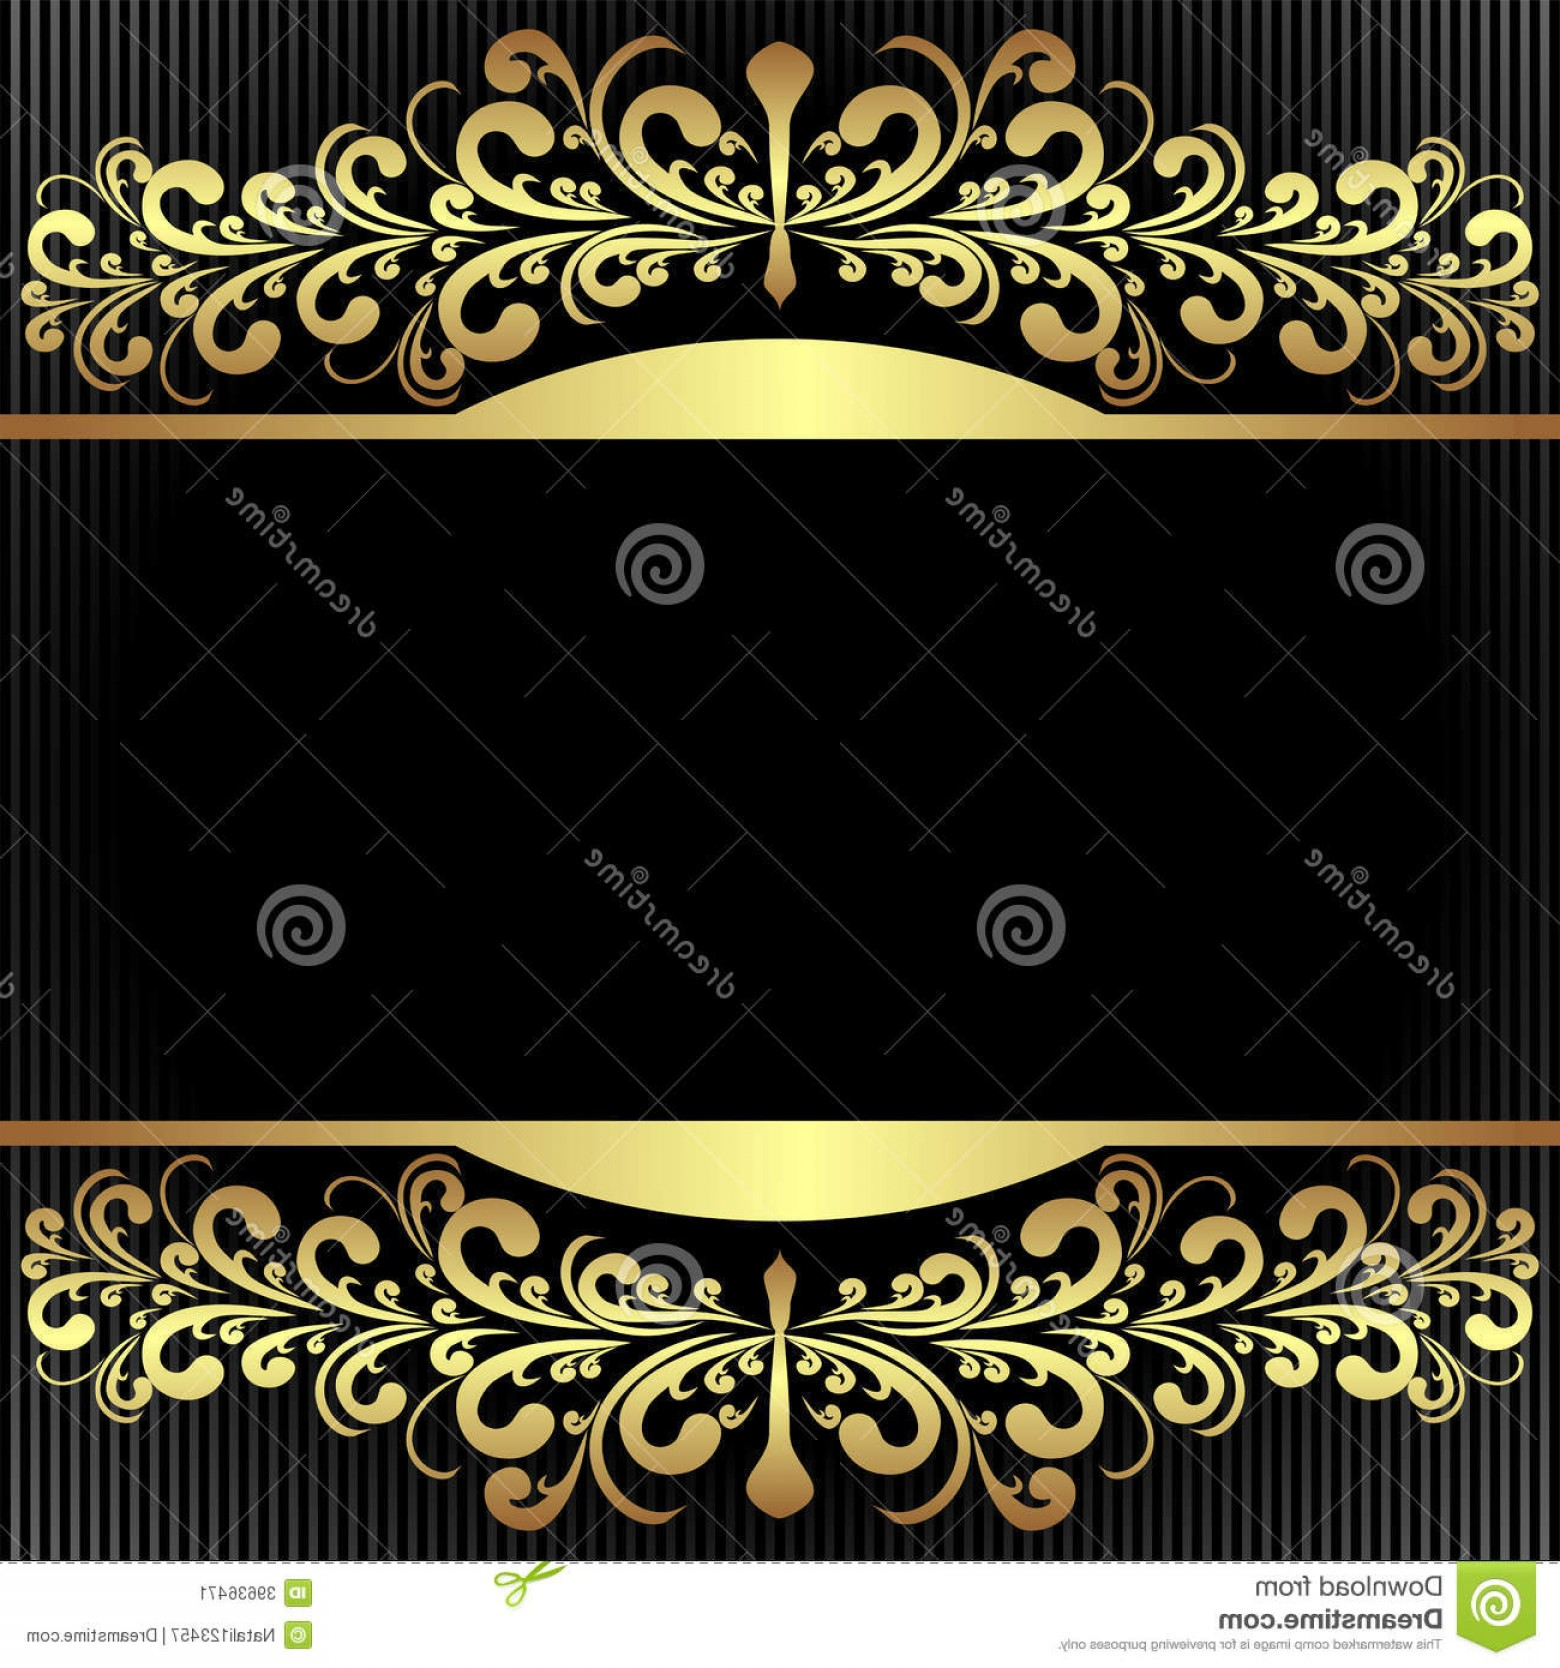 Blue And Gold Border Vector: Stock Image Elegant Black Background Royal Golden Borders Presented Image